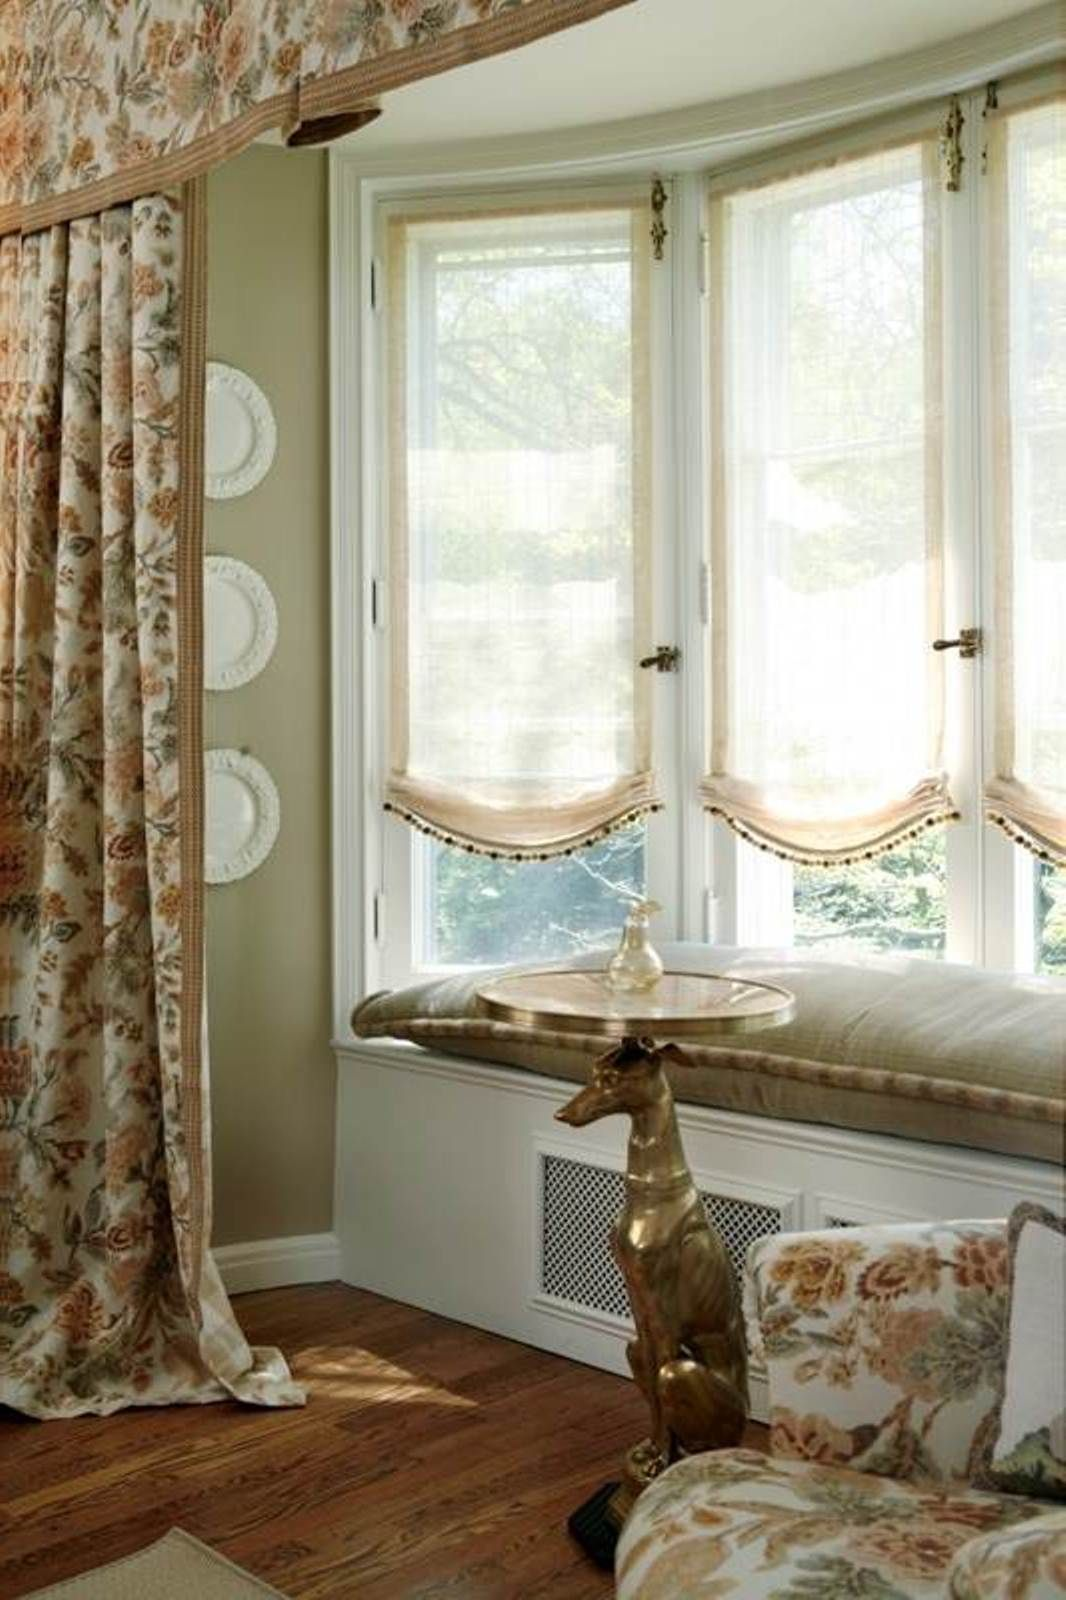 Kitchen window treatment ideas  bay window curtain ideas  designs page  simple and effective